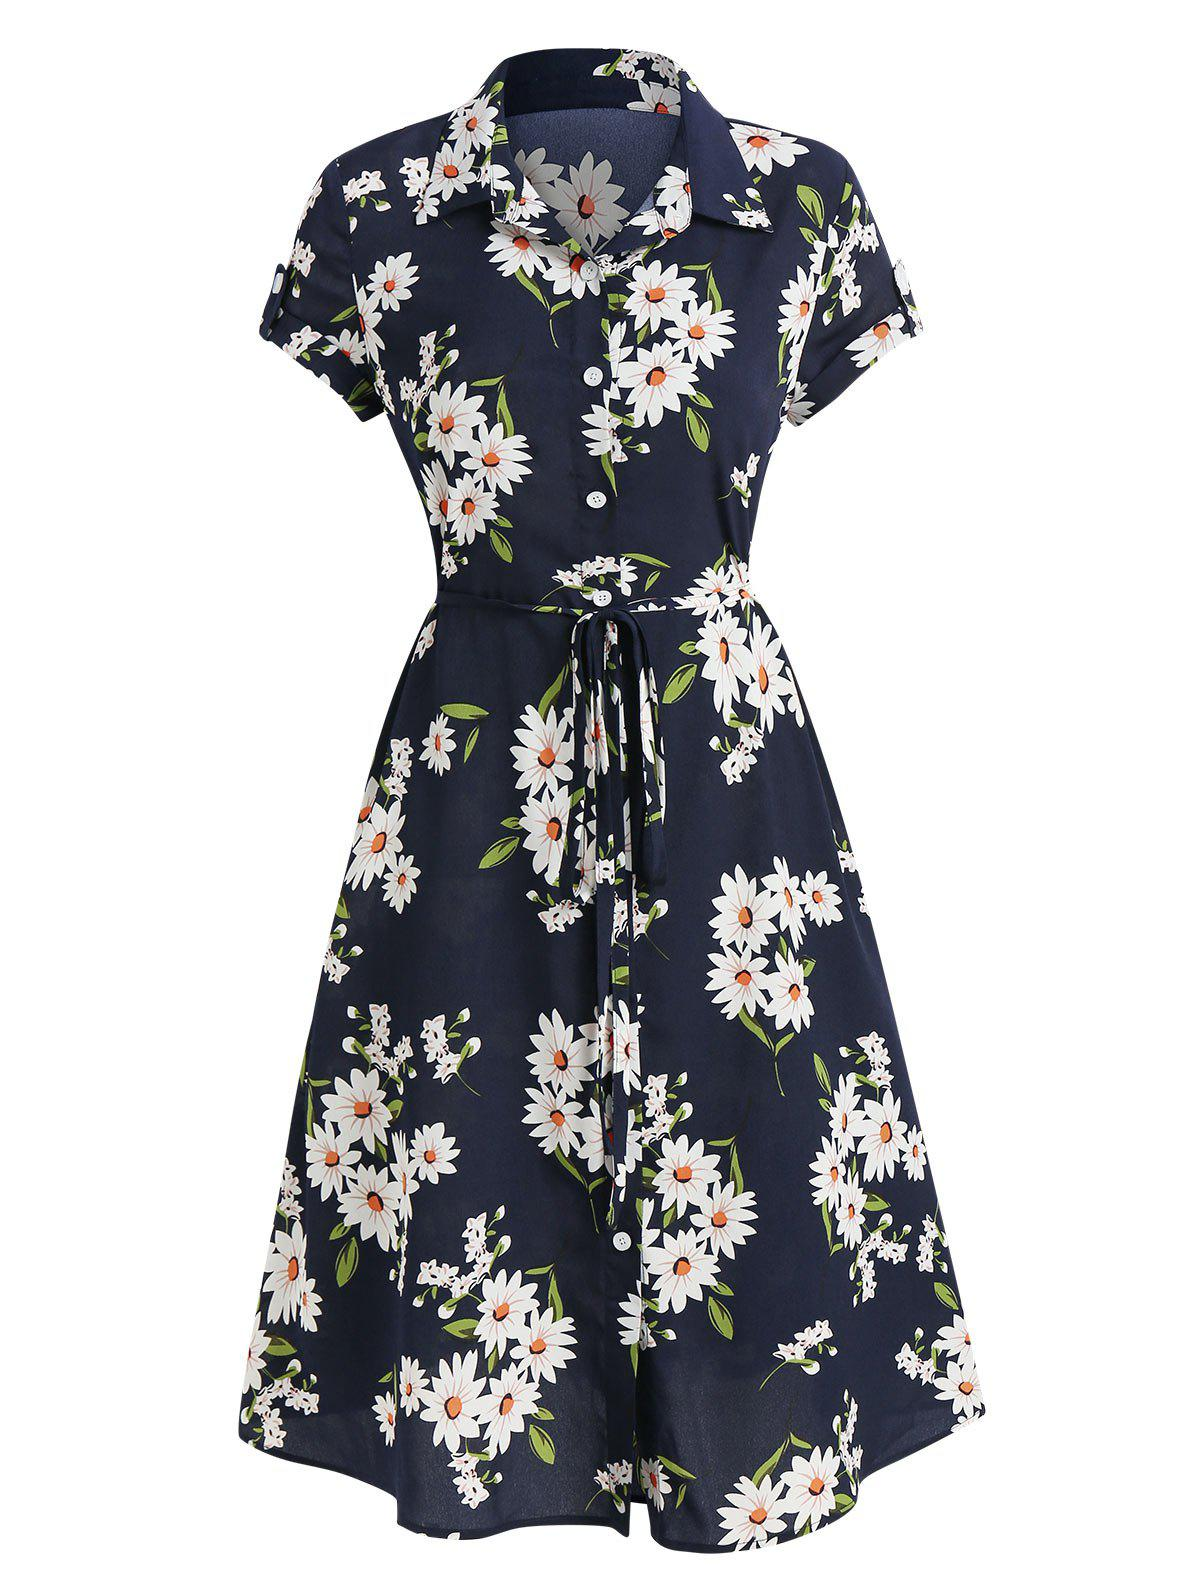 Floral Print Belted Shirt Dress - DARK SLATE BLUE 3XL